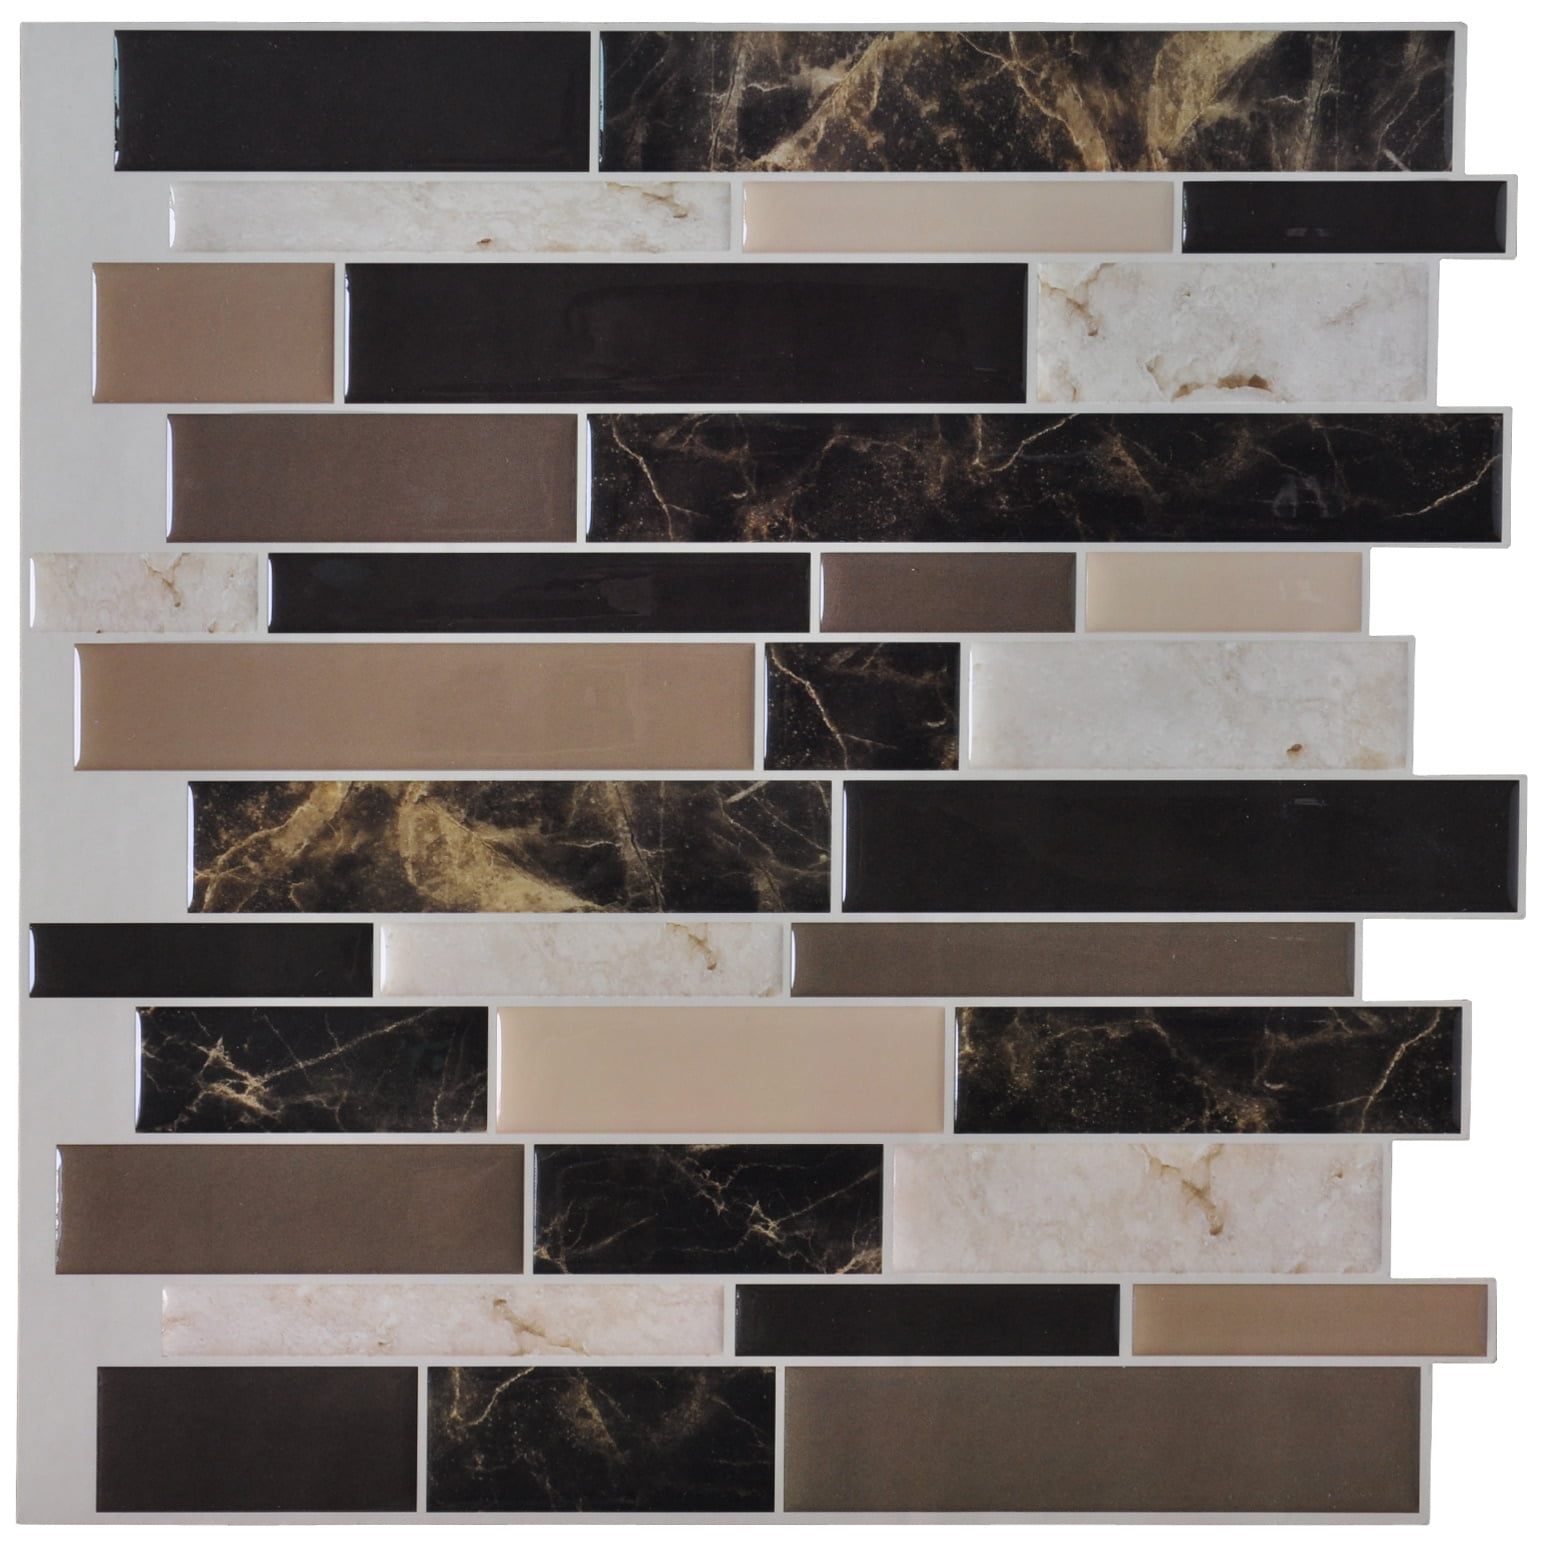 stick on kitchen backsplash Art3d 6 Pack Peel and Stick Vinyl Sticker Kitchen Backsplash Tiles  stick on kitchen backsplash